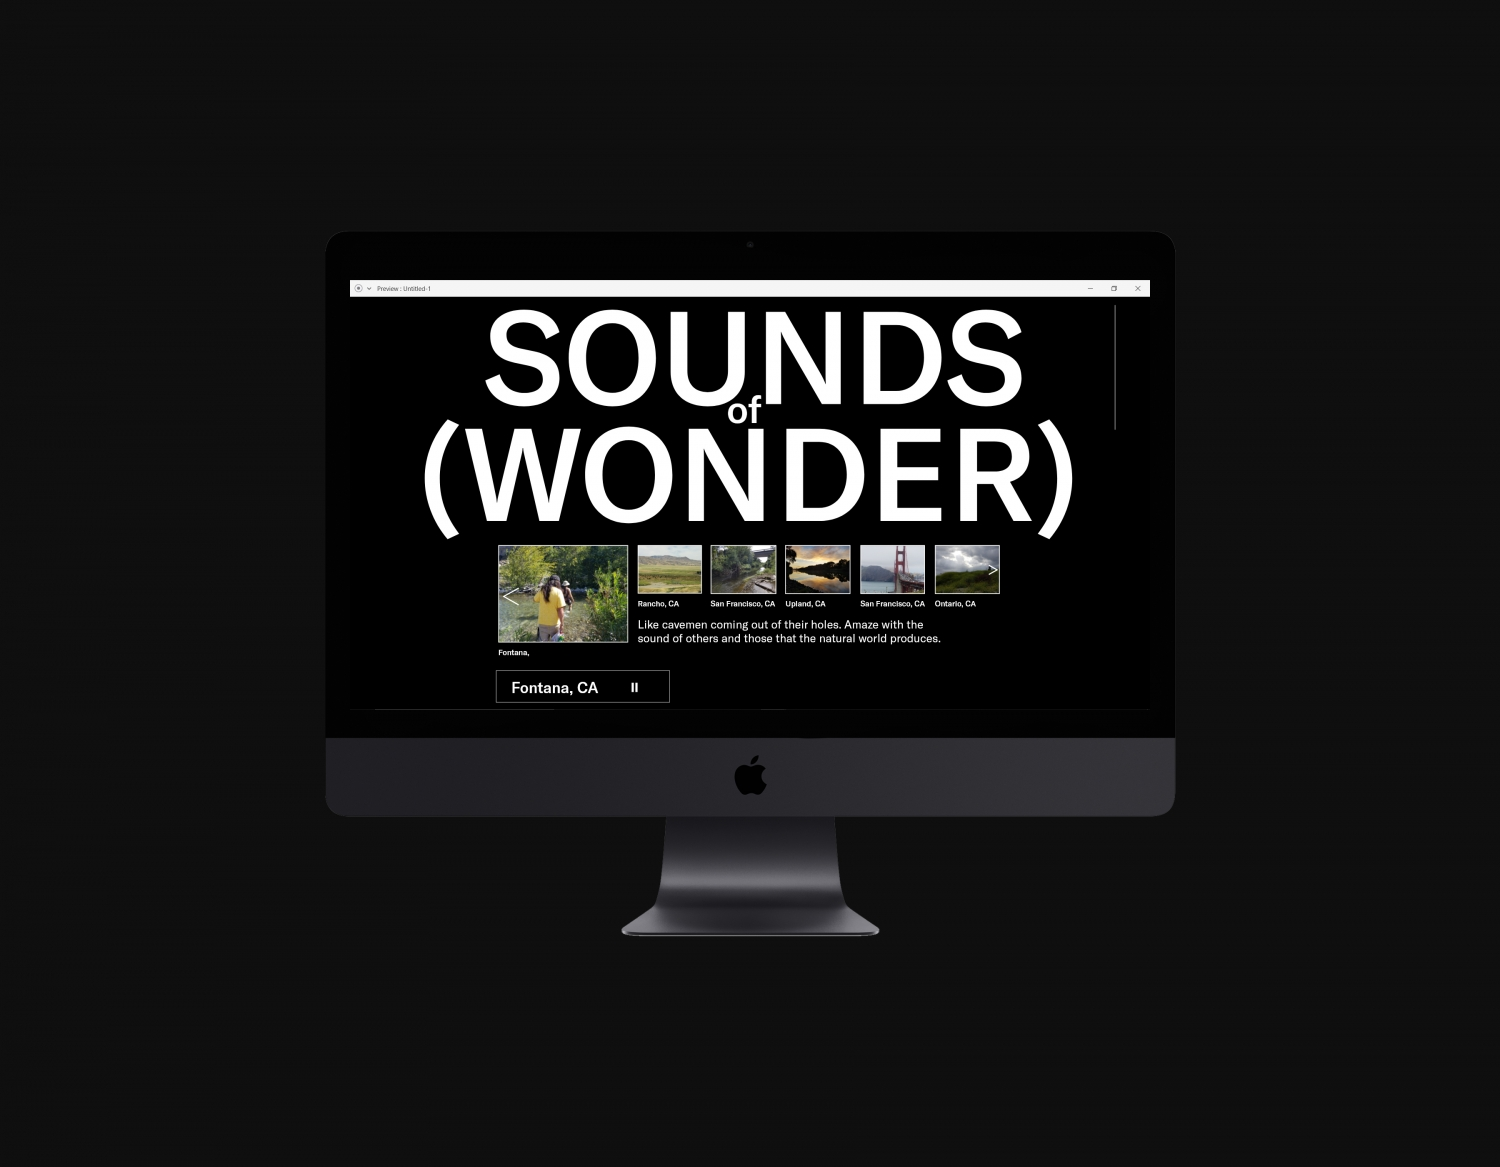 Sounds of wonder. Like cavemen coming out of their holes amaze with the sound of others and those that the natural world produces. A website that offers a place where to share the natural sounds from your surroundings. User interface.